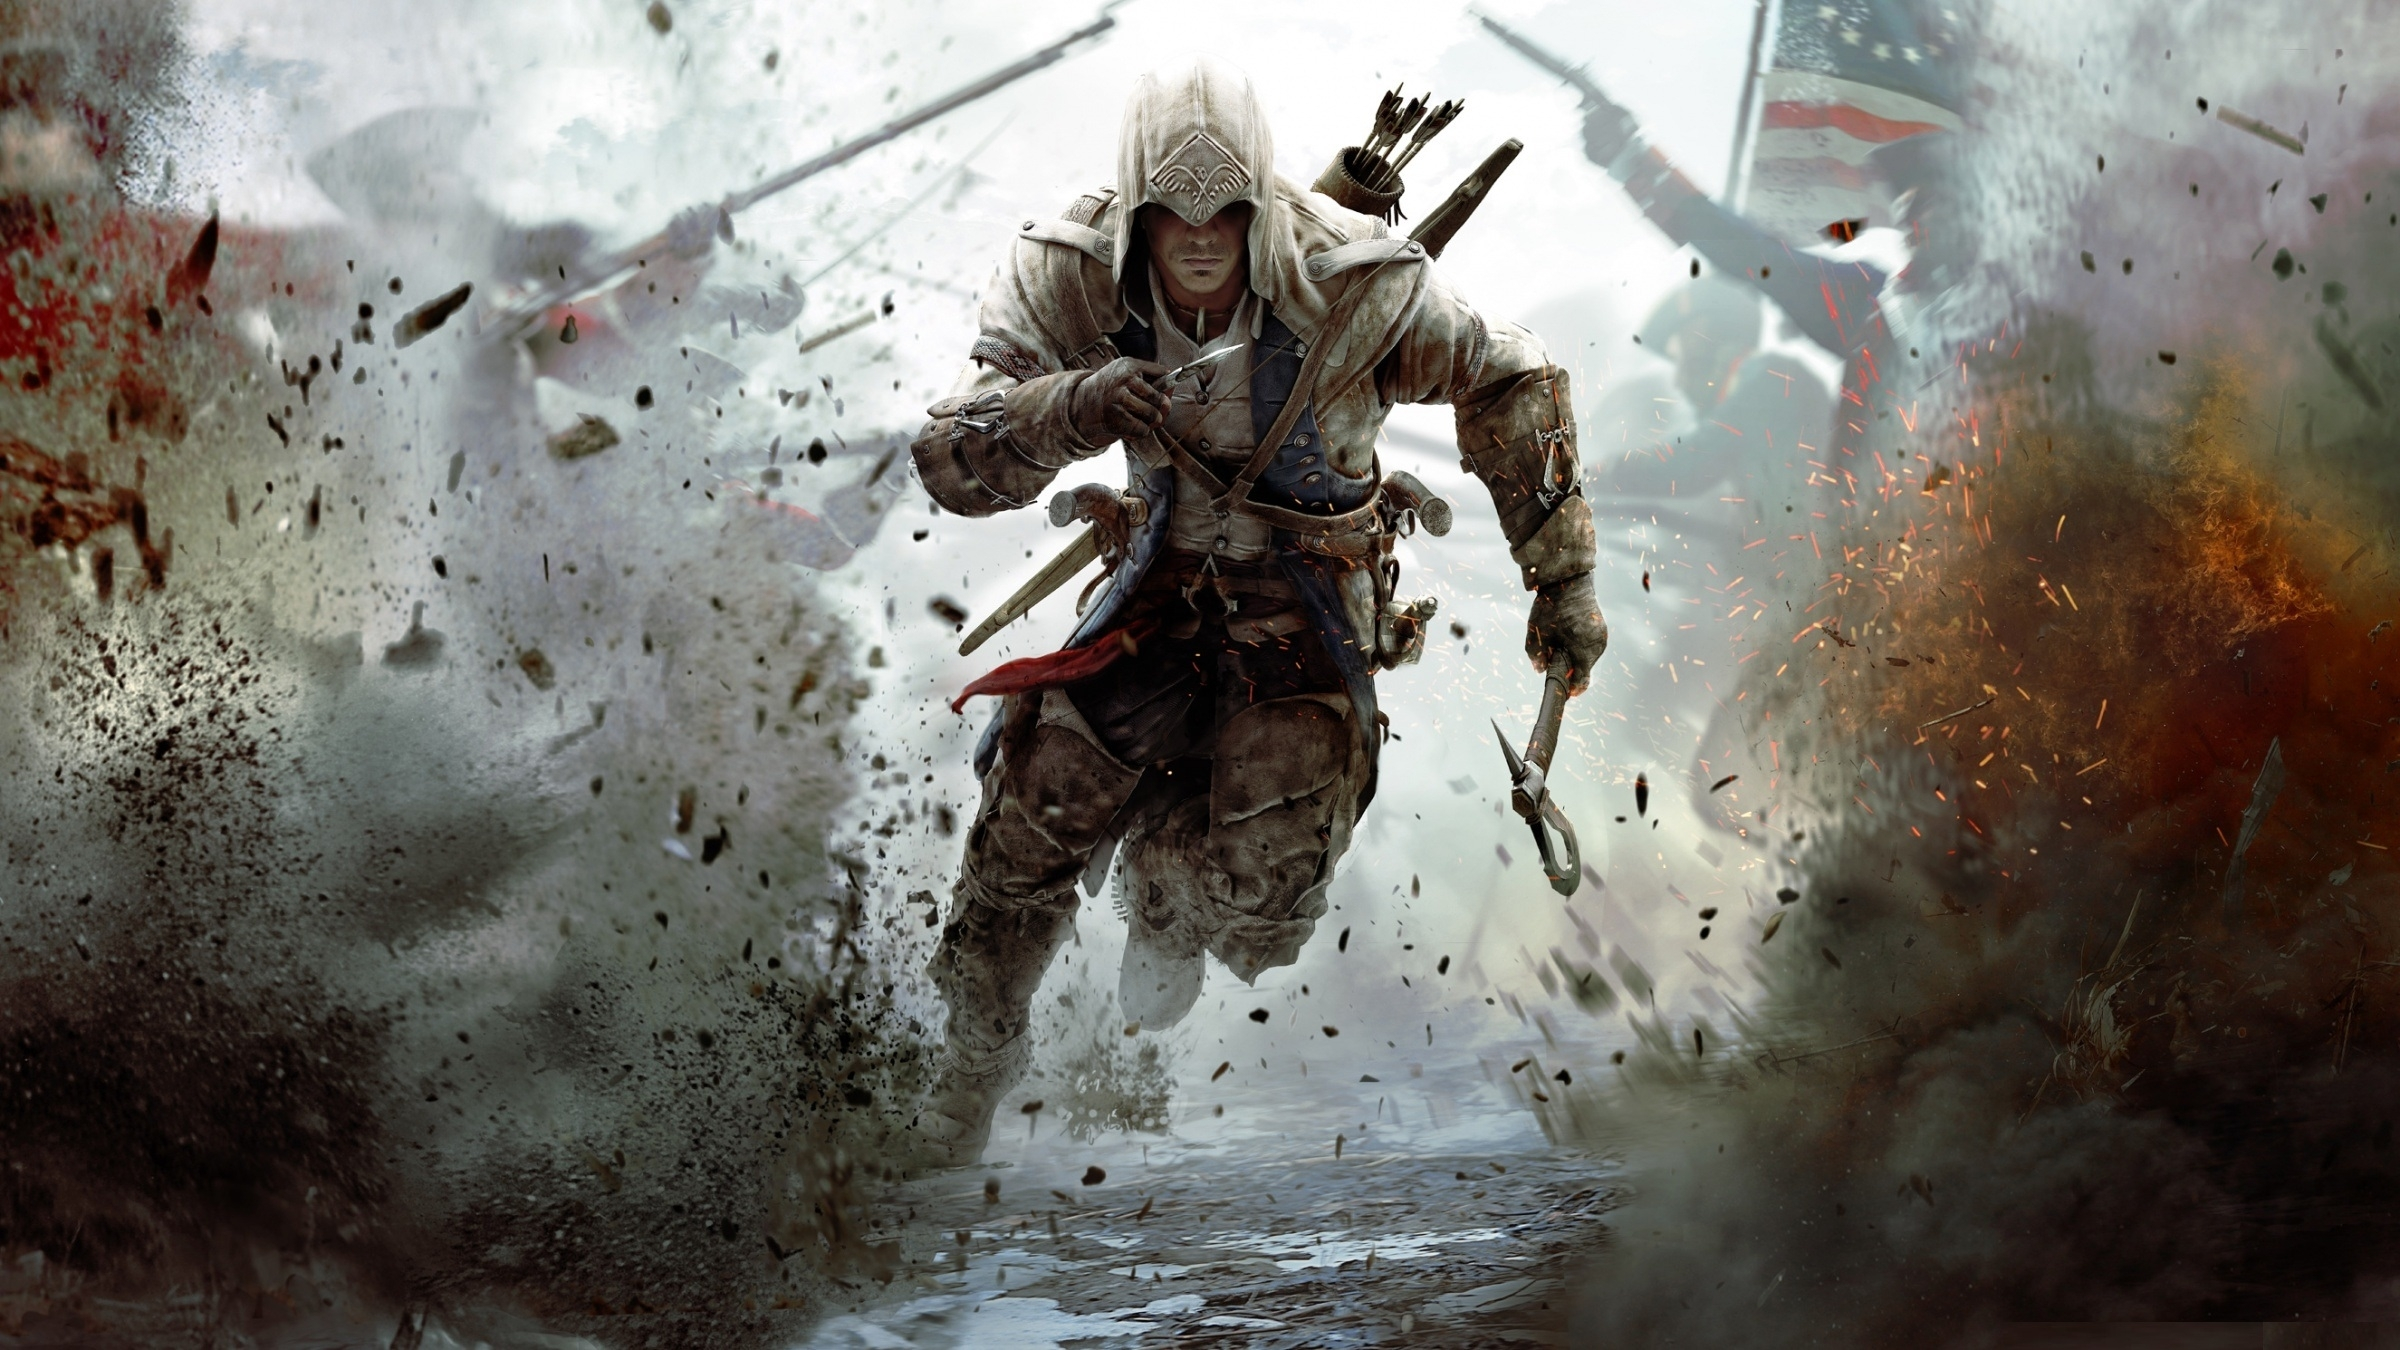 10 New Hd Wallpapers 1080p Games Full Hd 1920 1080 For Pc: 10 Best Awesome Gaming Wallpapers Hd 1080P FULL HD 1920